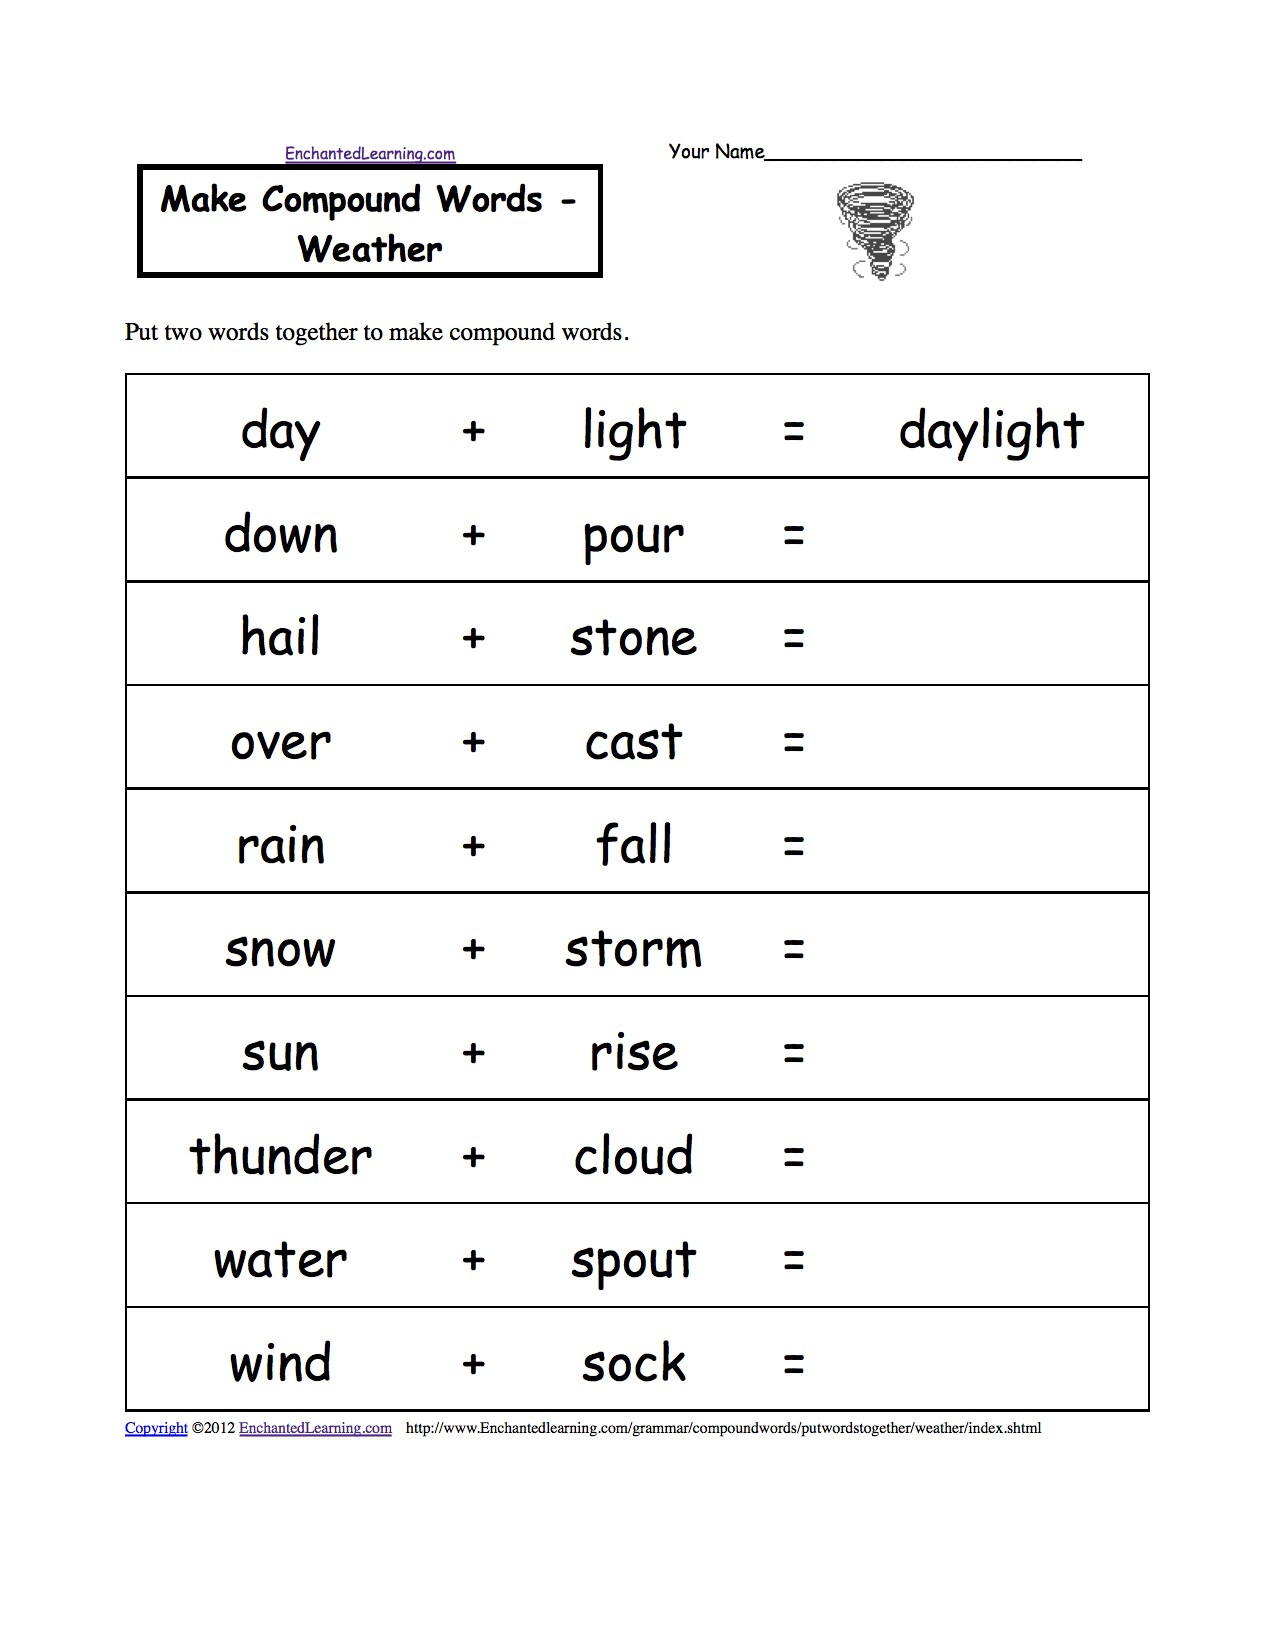 Free Printable Science Worksheets For 2Nd Grade – Worksheet Template - Free Printable Science Worksheets For Grade 2